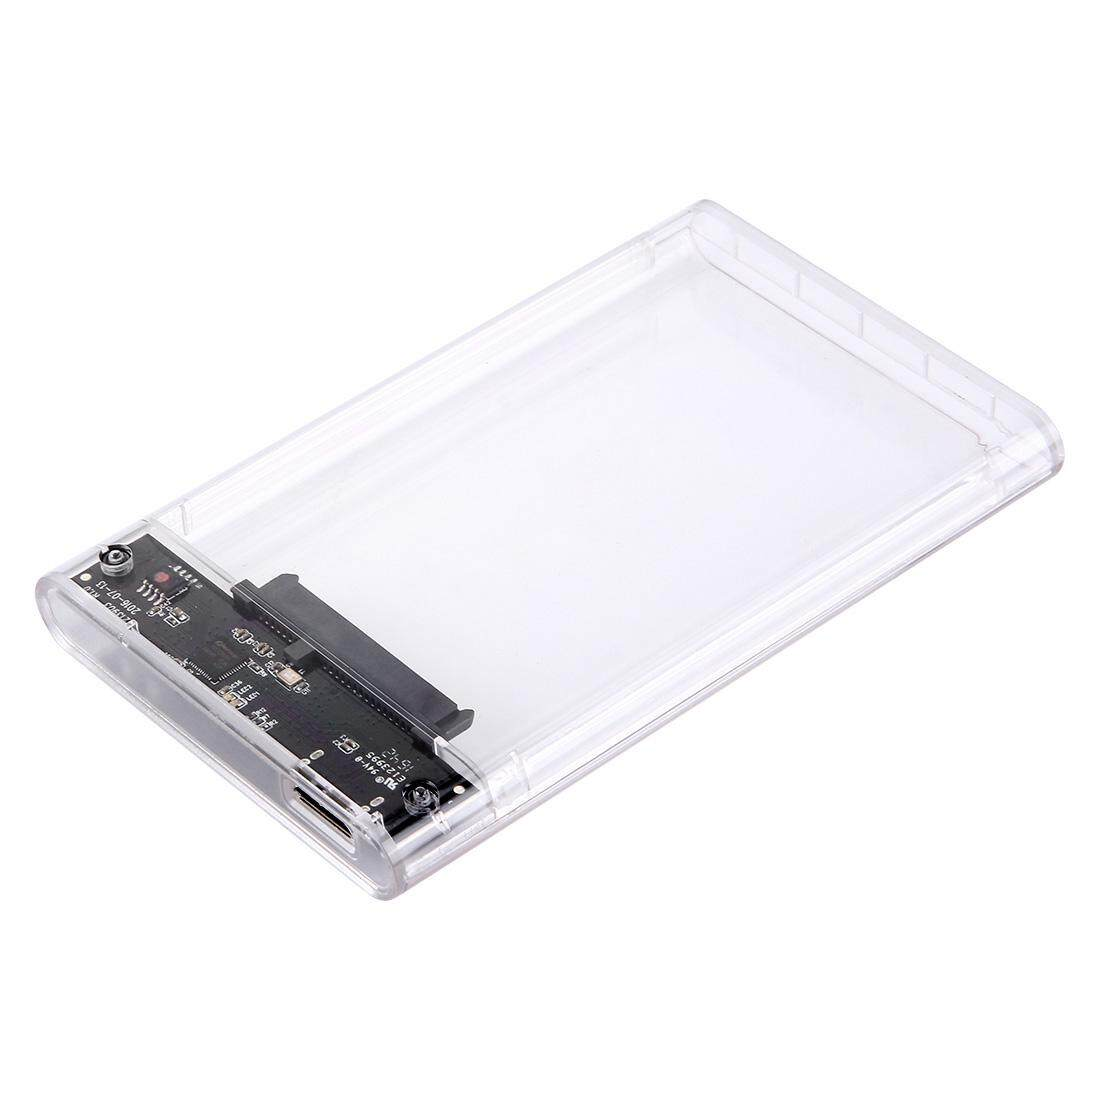 Sell Orico Hdd Cheapest Best Quality Th Store 6218us3 Usb30 Docking Station For Or Ssd 25inch 35inch Sata Thb 292